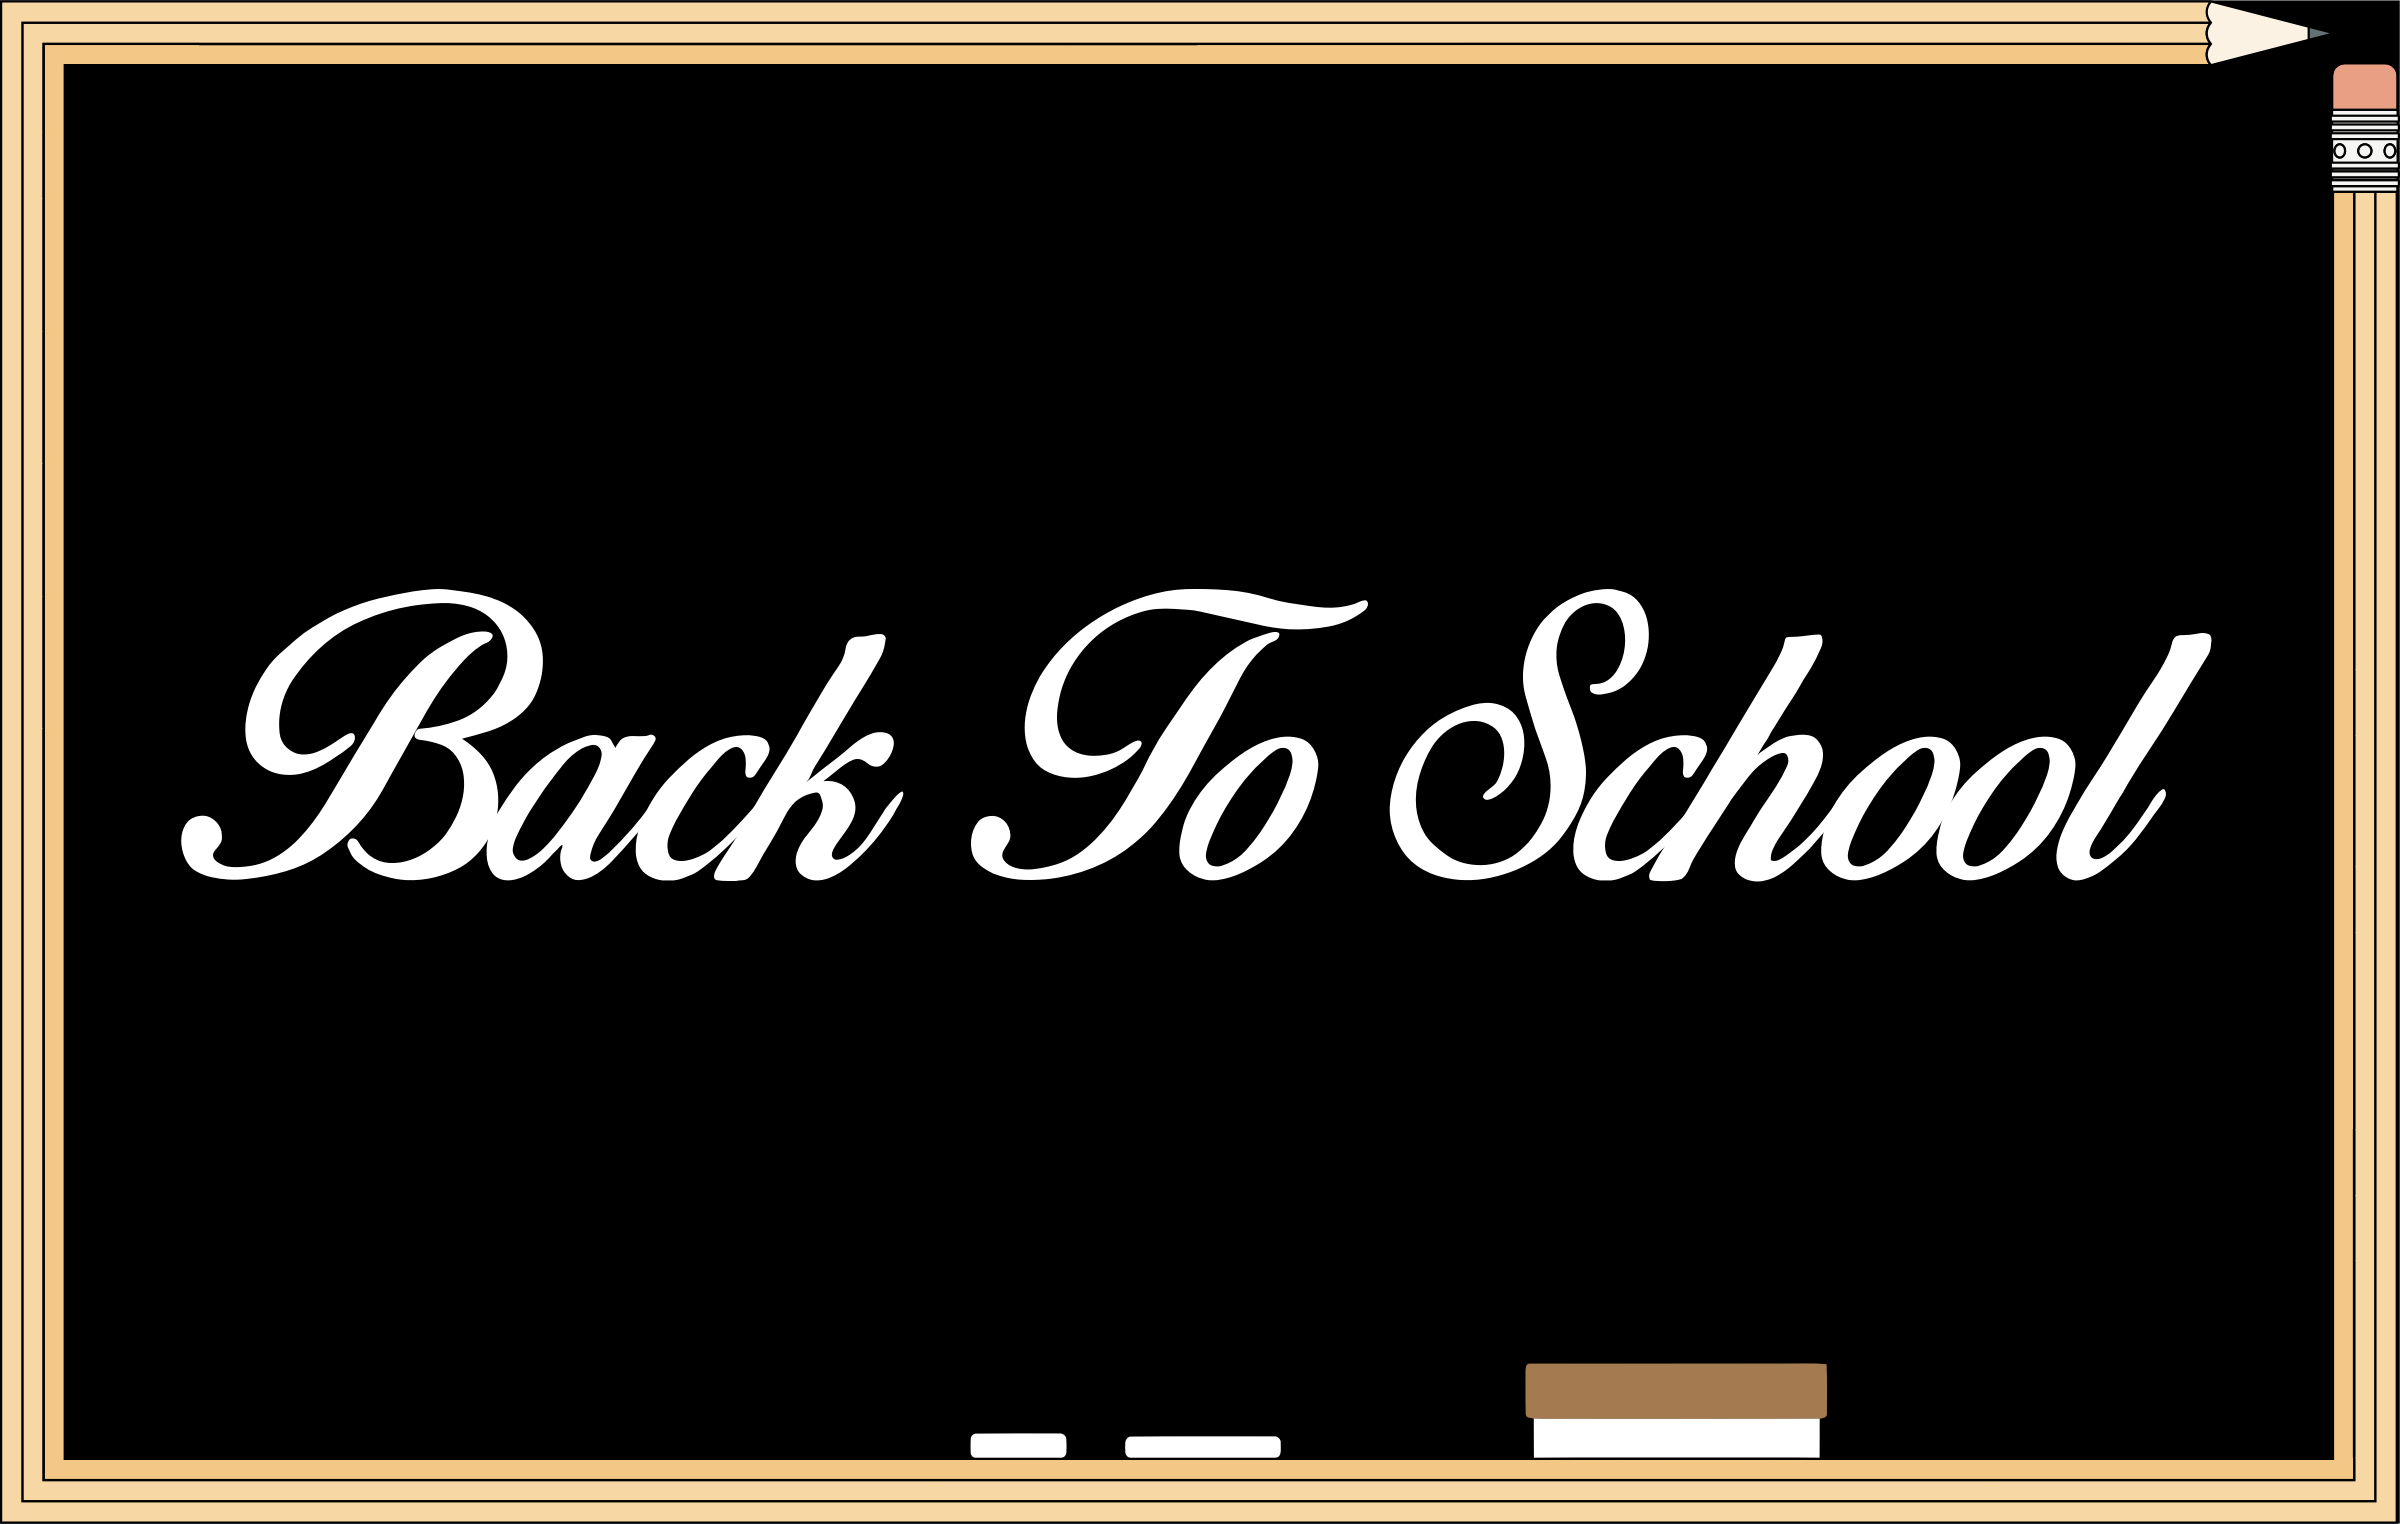 Back To School Fixed by GDJ